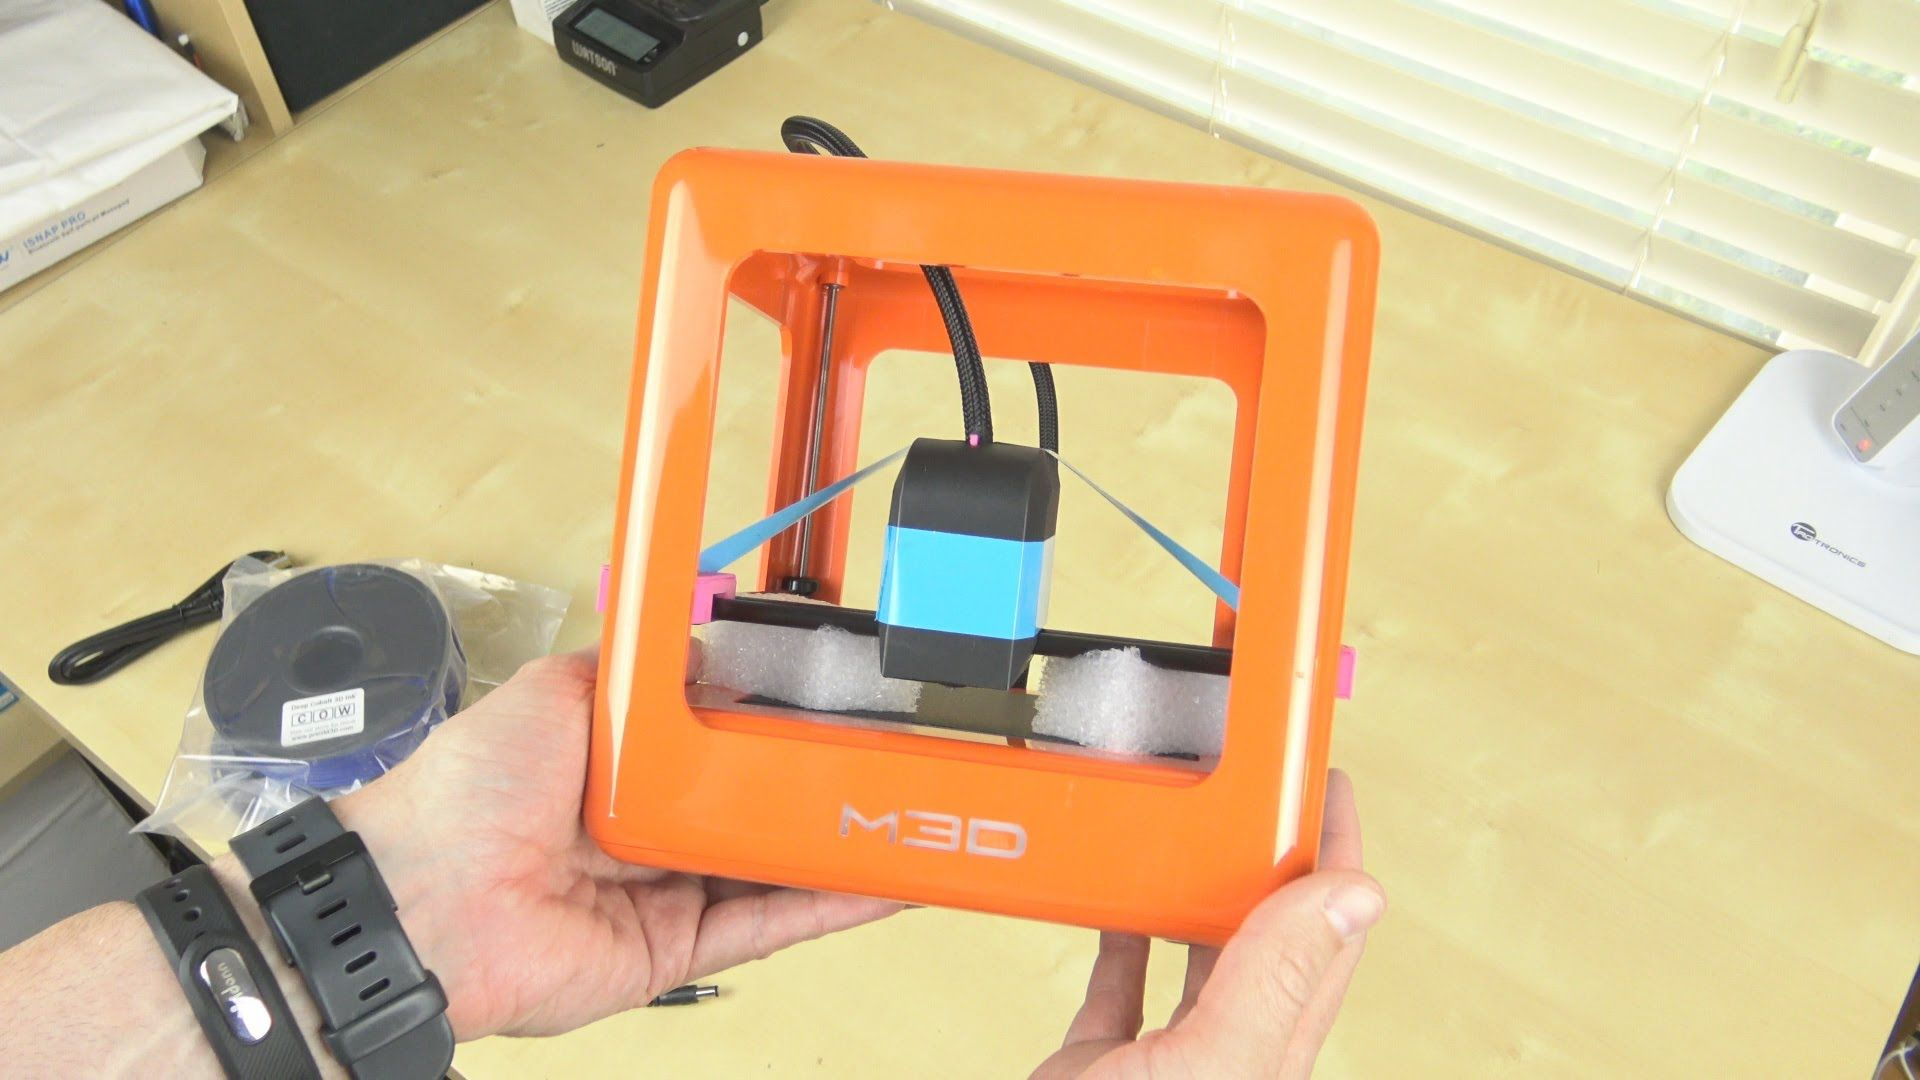 M3D Micro 3D Printer Unboxing and First Print Sample (With